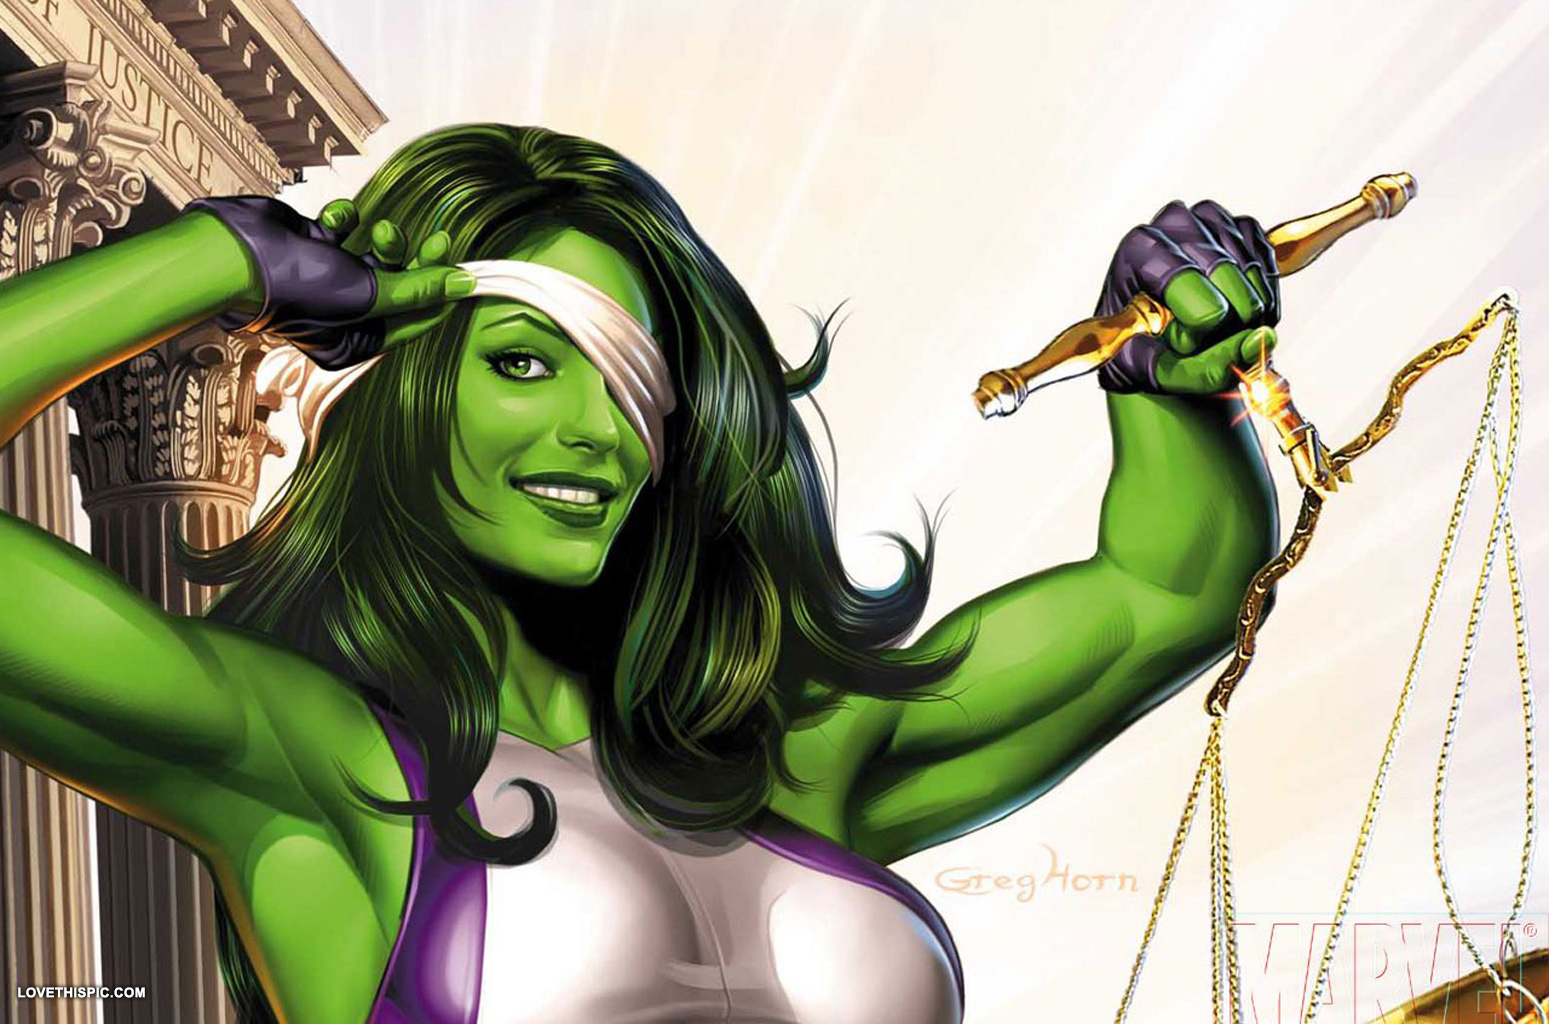 Doctor Who Director Wants She-Hulk